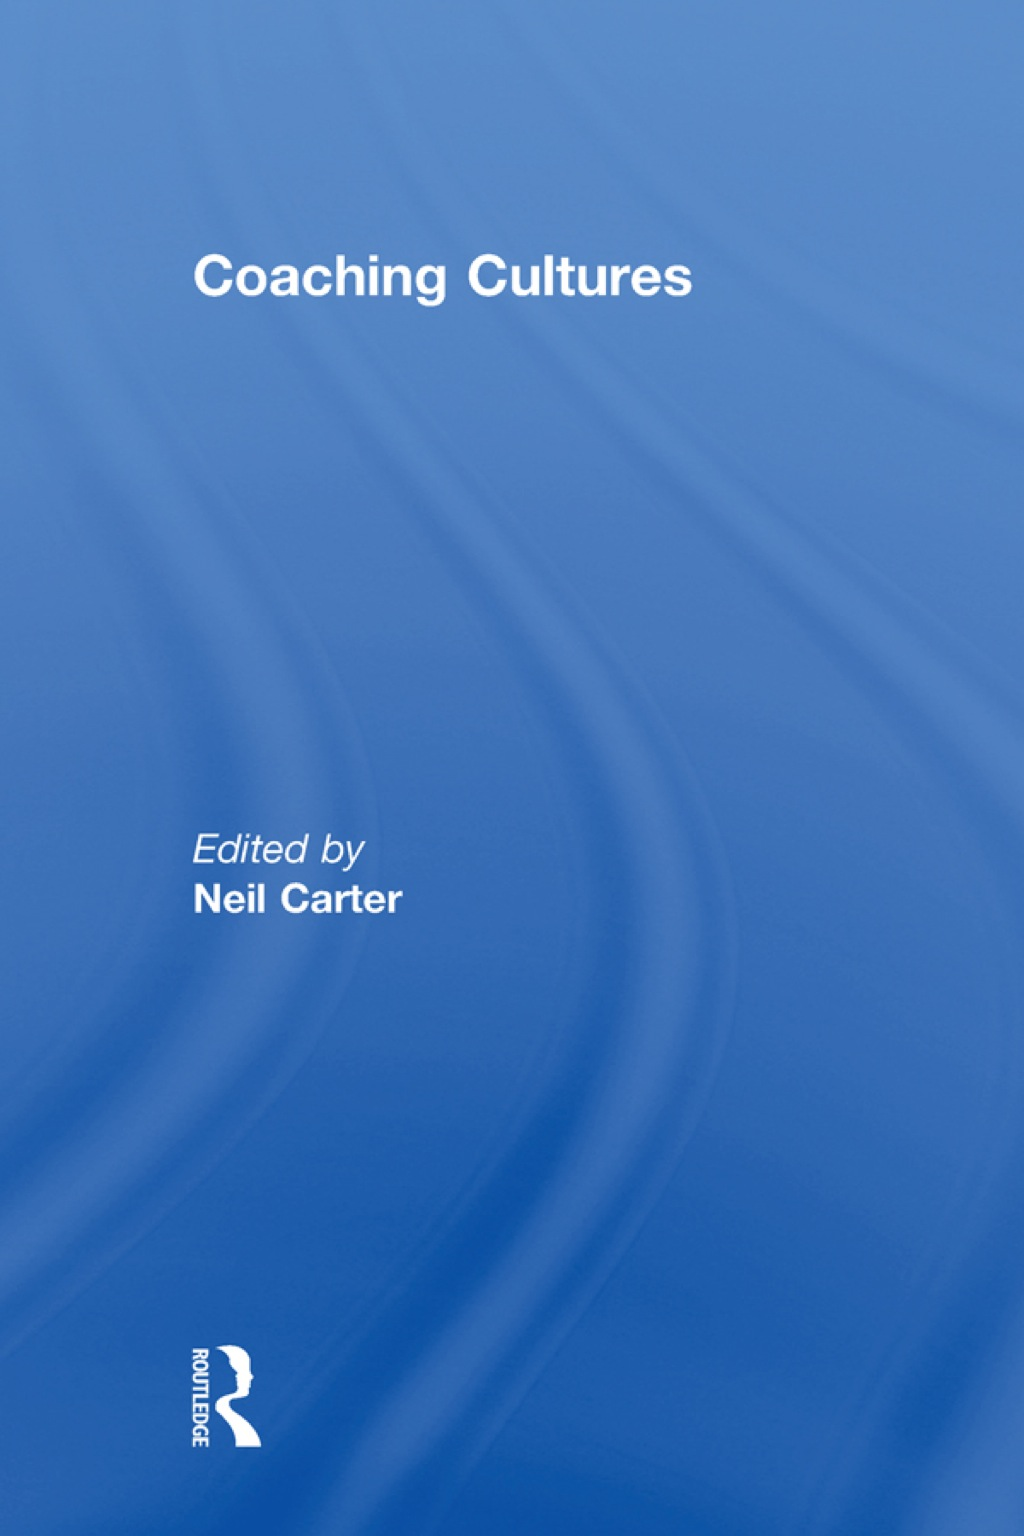 Coaching Cultures (ebook) eBooks